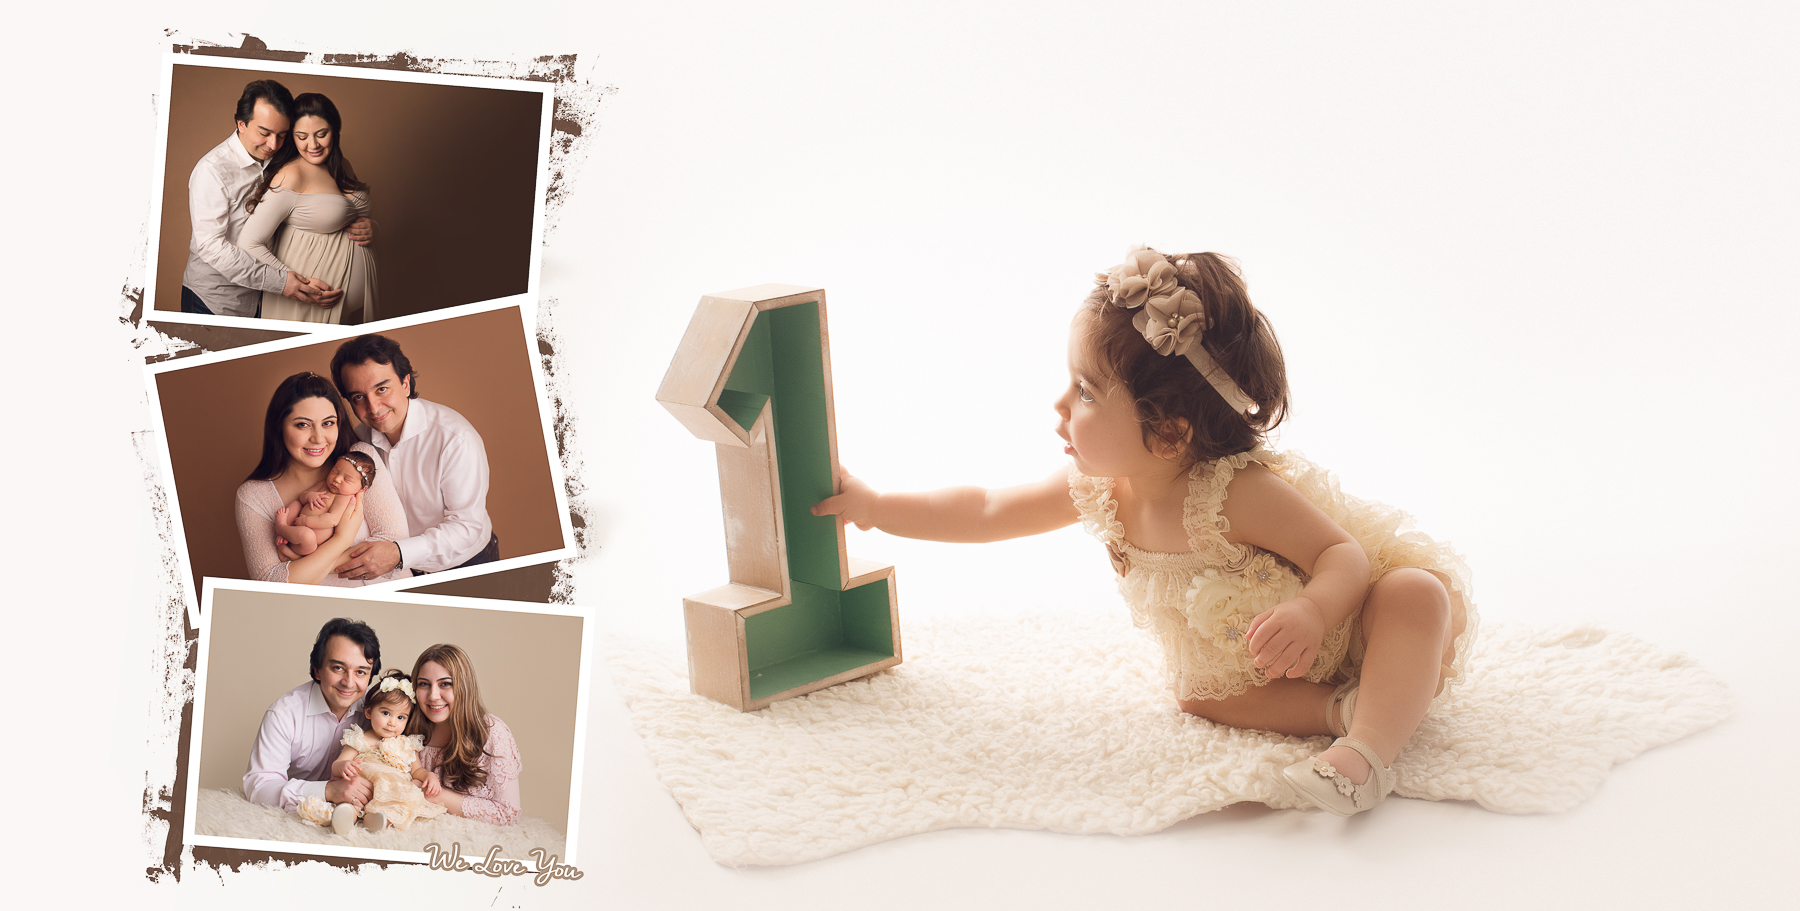 Vancouver & Burnaby baby photography - cake smash - maternity, newborn